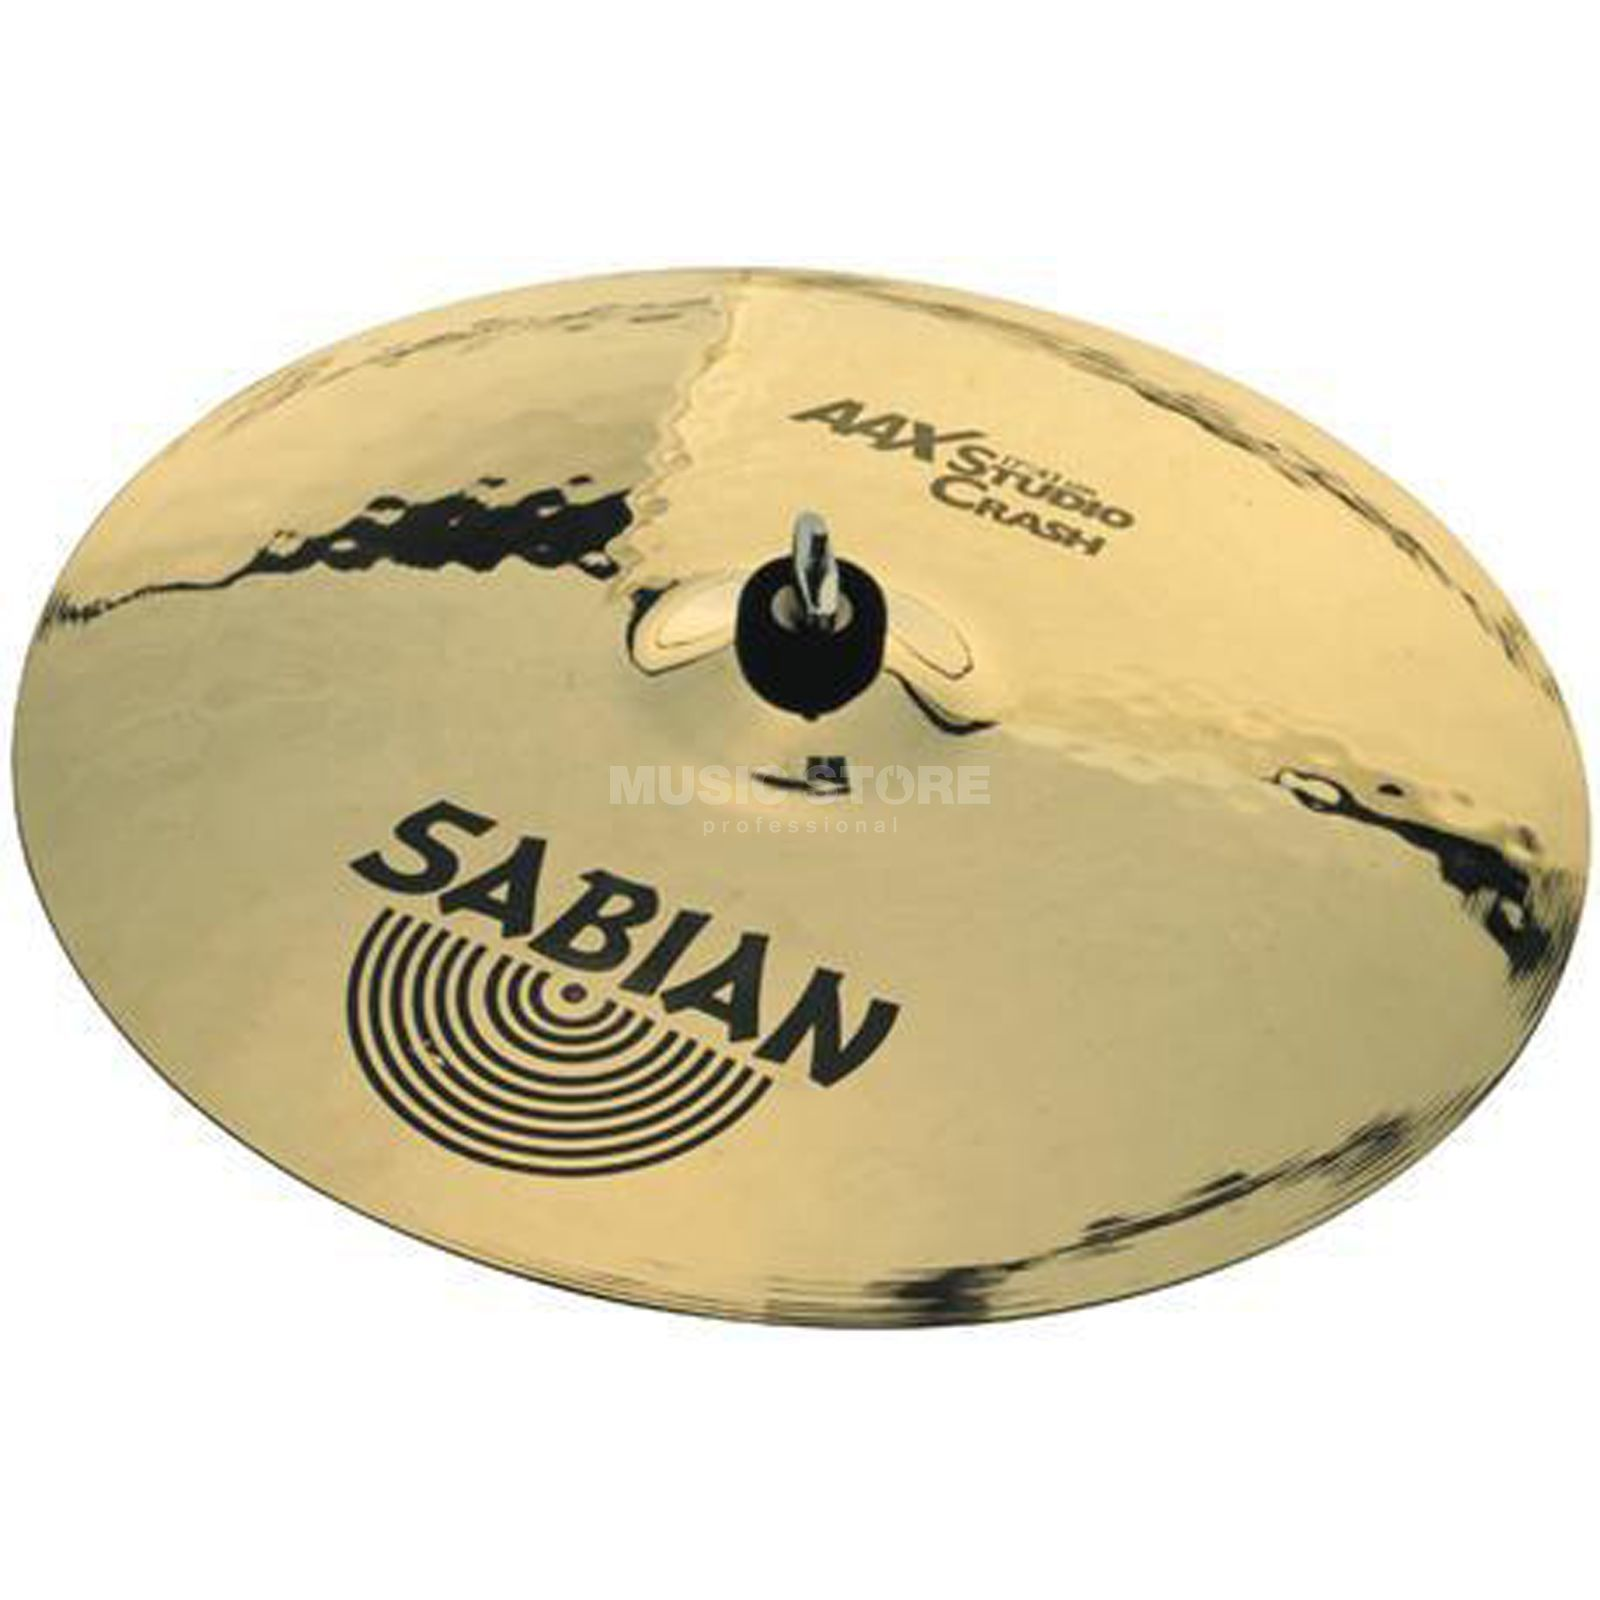 "Sabian AAX Studio Crash 18"", Brilliant Finish Изображение товара"